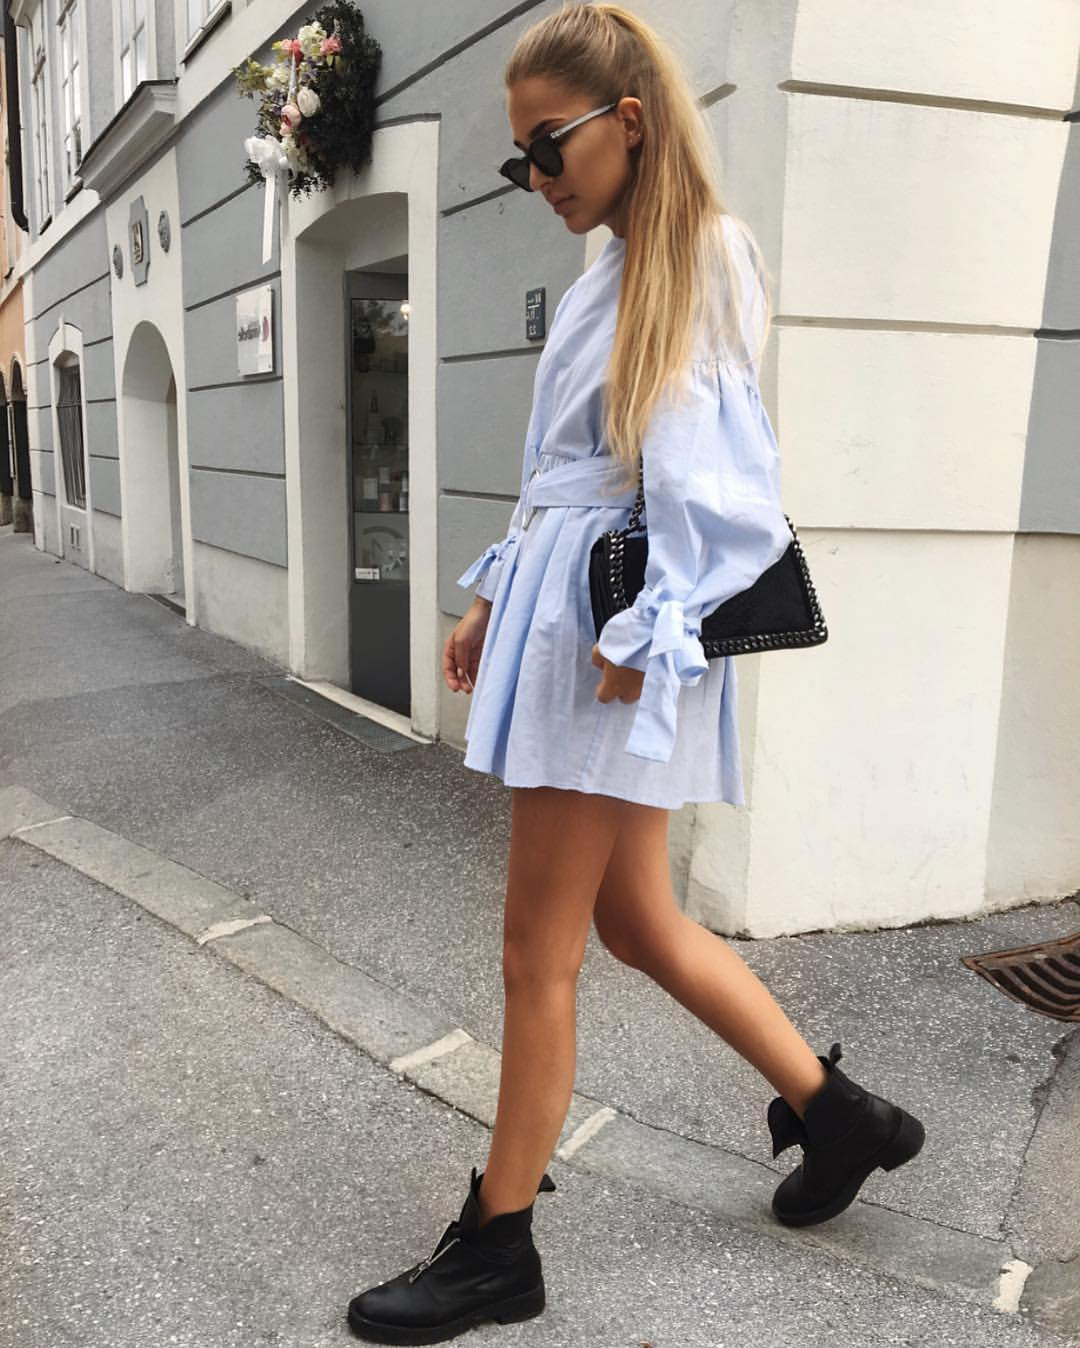 Pastel Blue Tied Shirtdress And Black Leather Flat Ankle Boots For Summer 2020